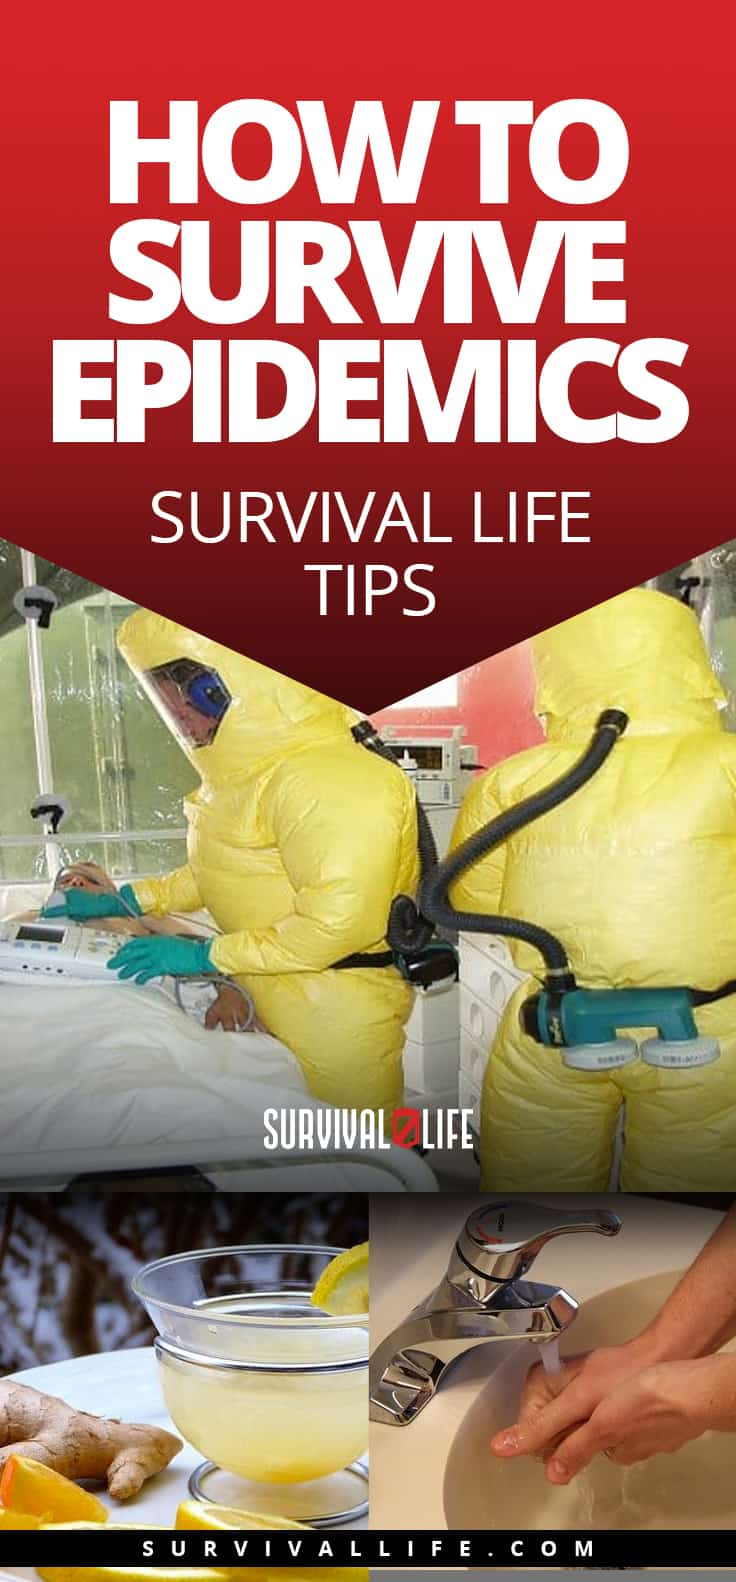 How To Survive Epidemics | Survival Life Tips